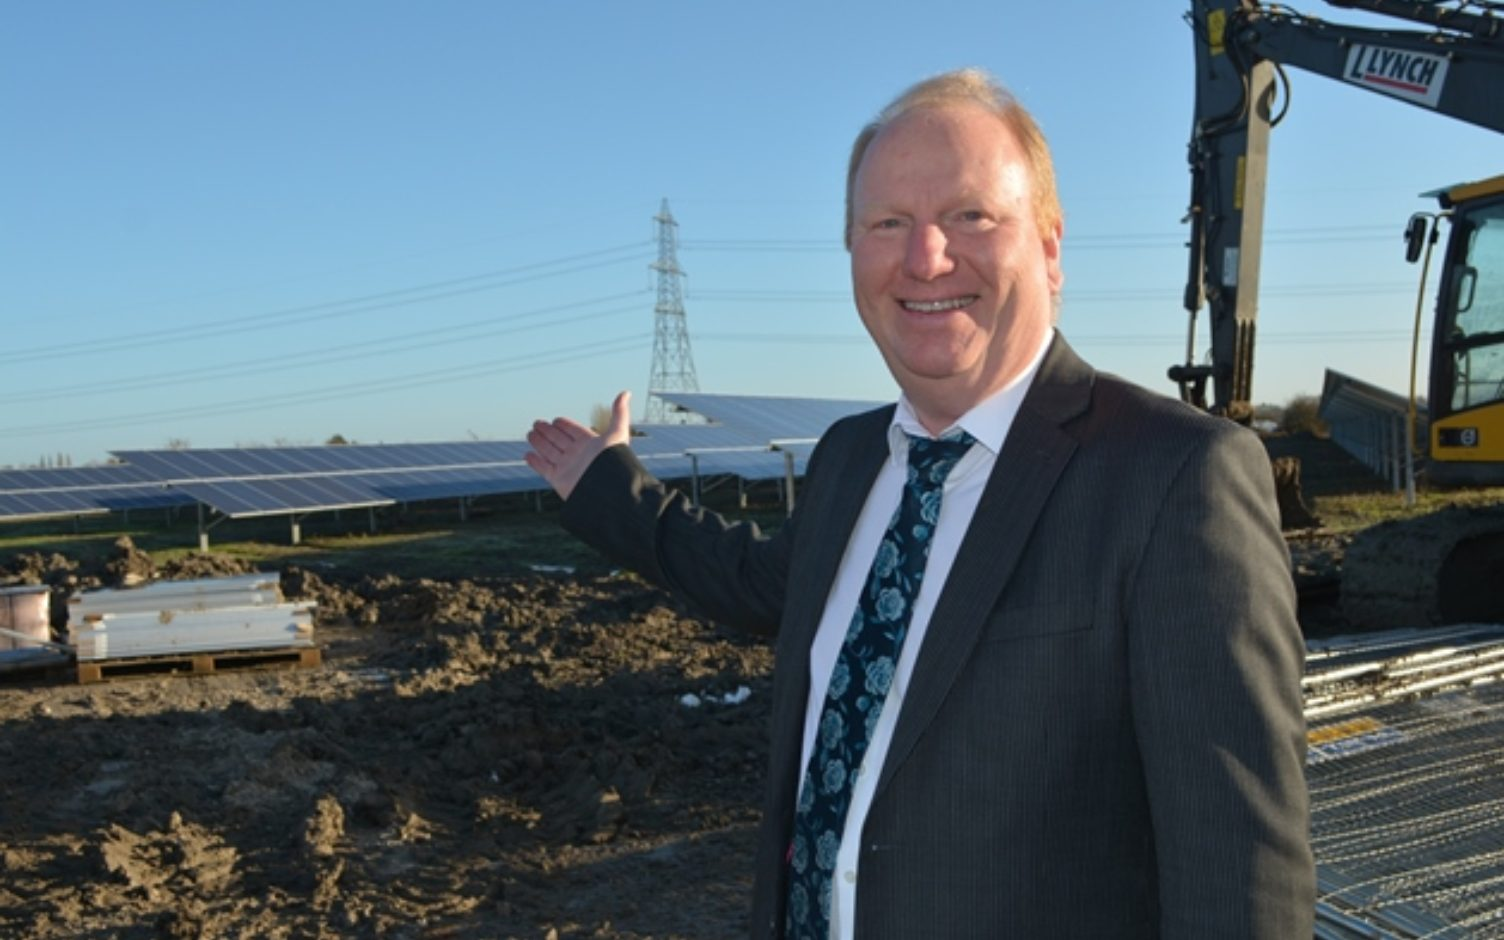 Cambridge's CfD success highlights solar opportunity for local authorities